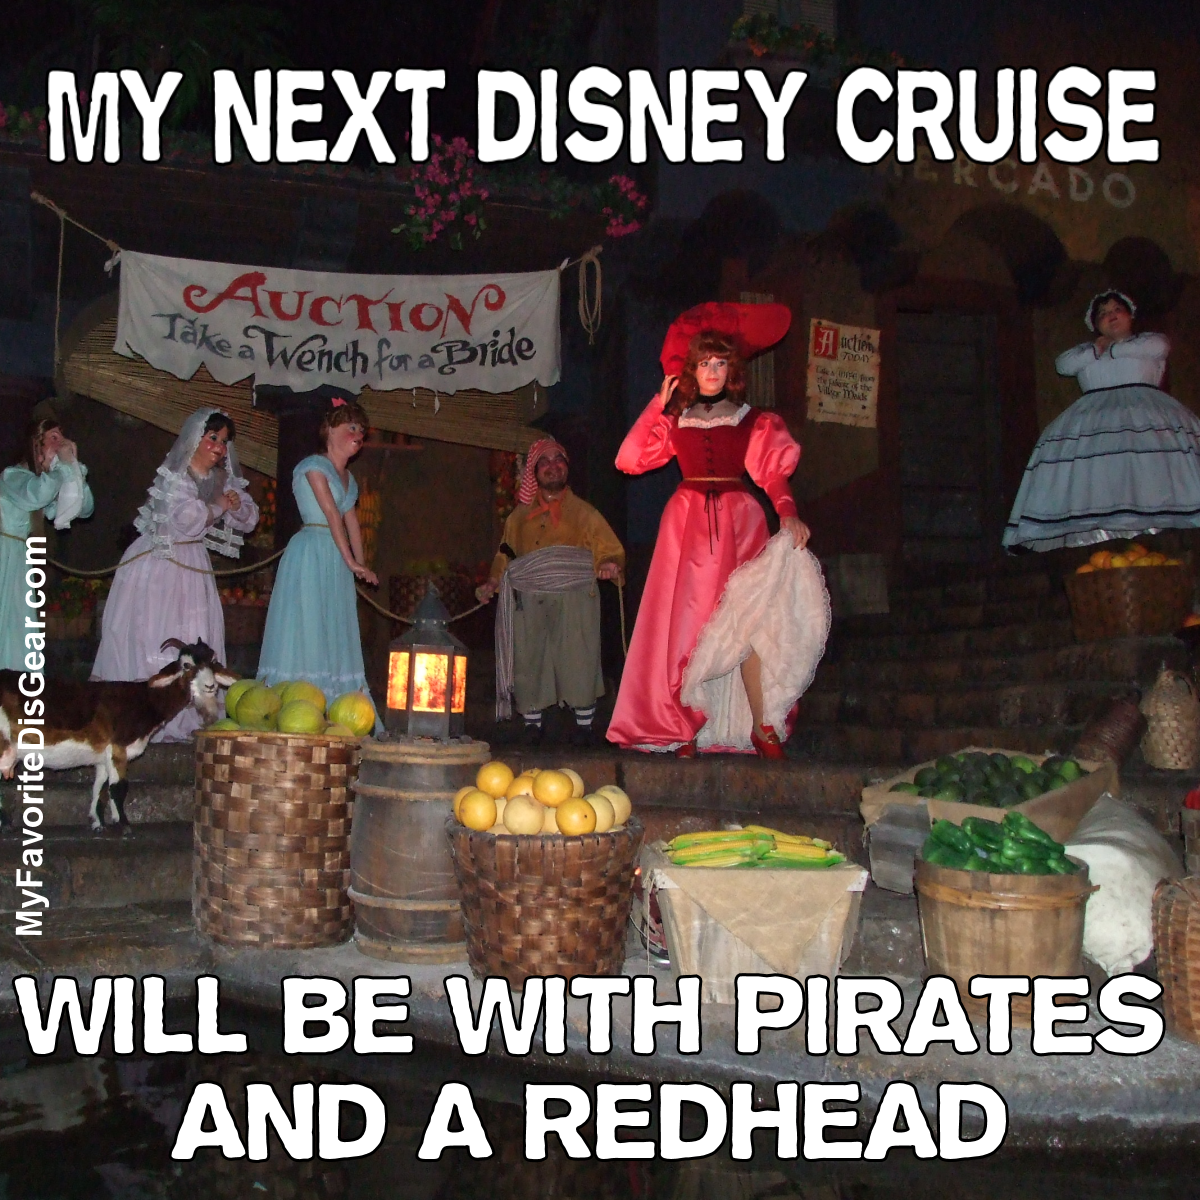 My next disney cruise will be with pirates and a redhead meme